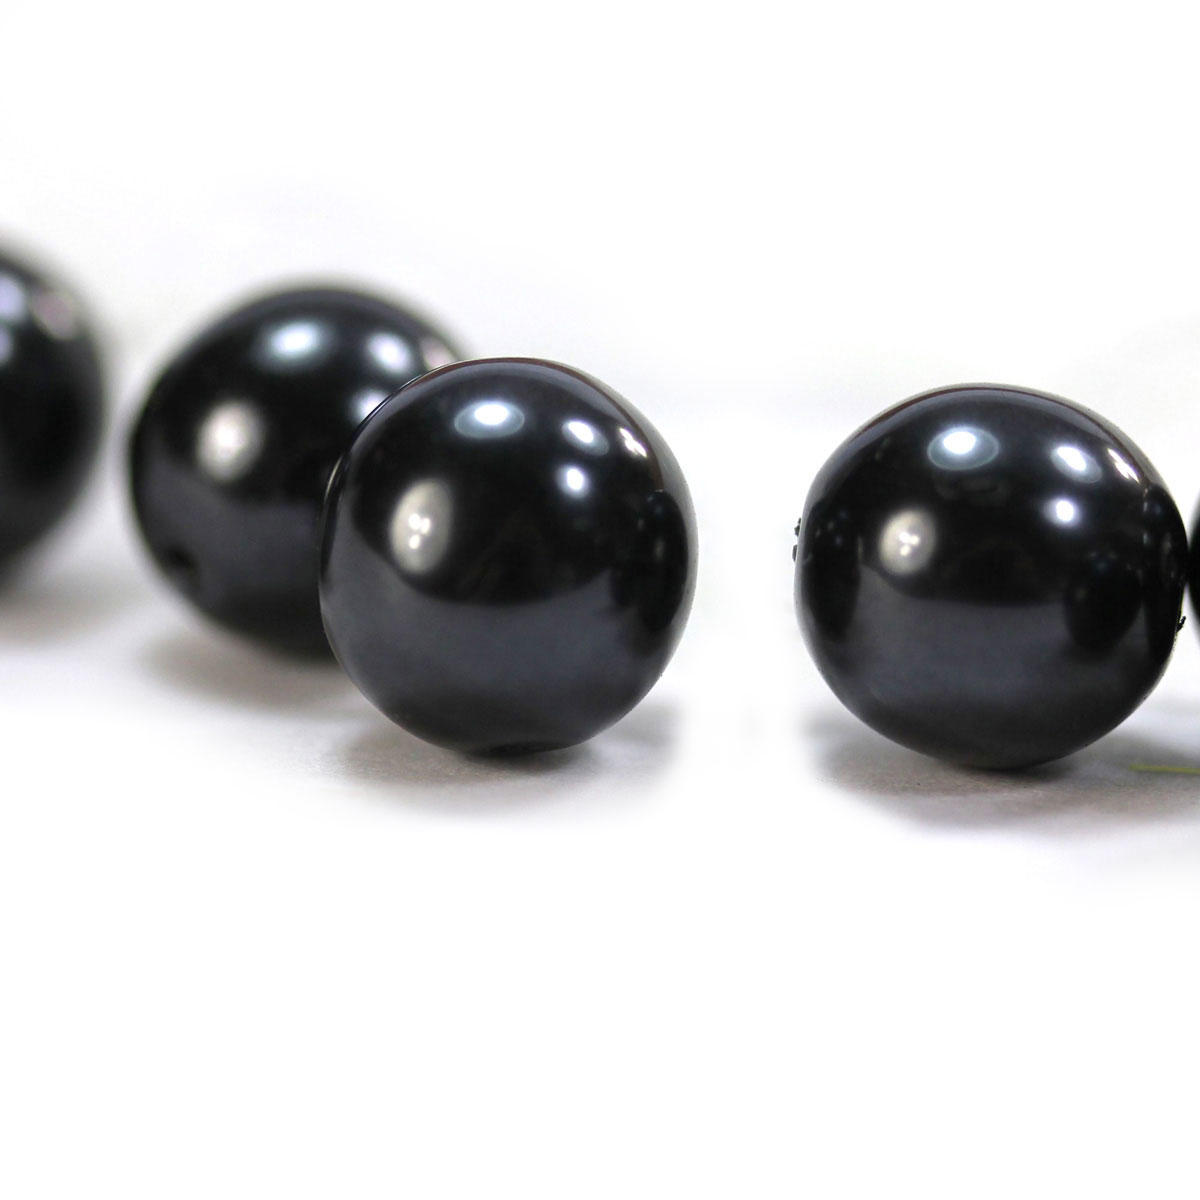 The Black Pearl Glass Bead